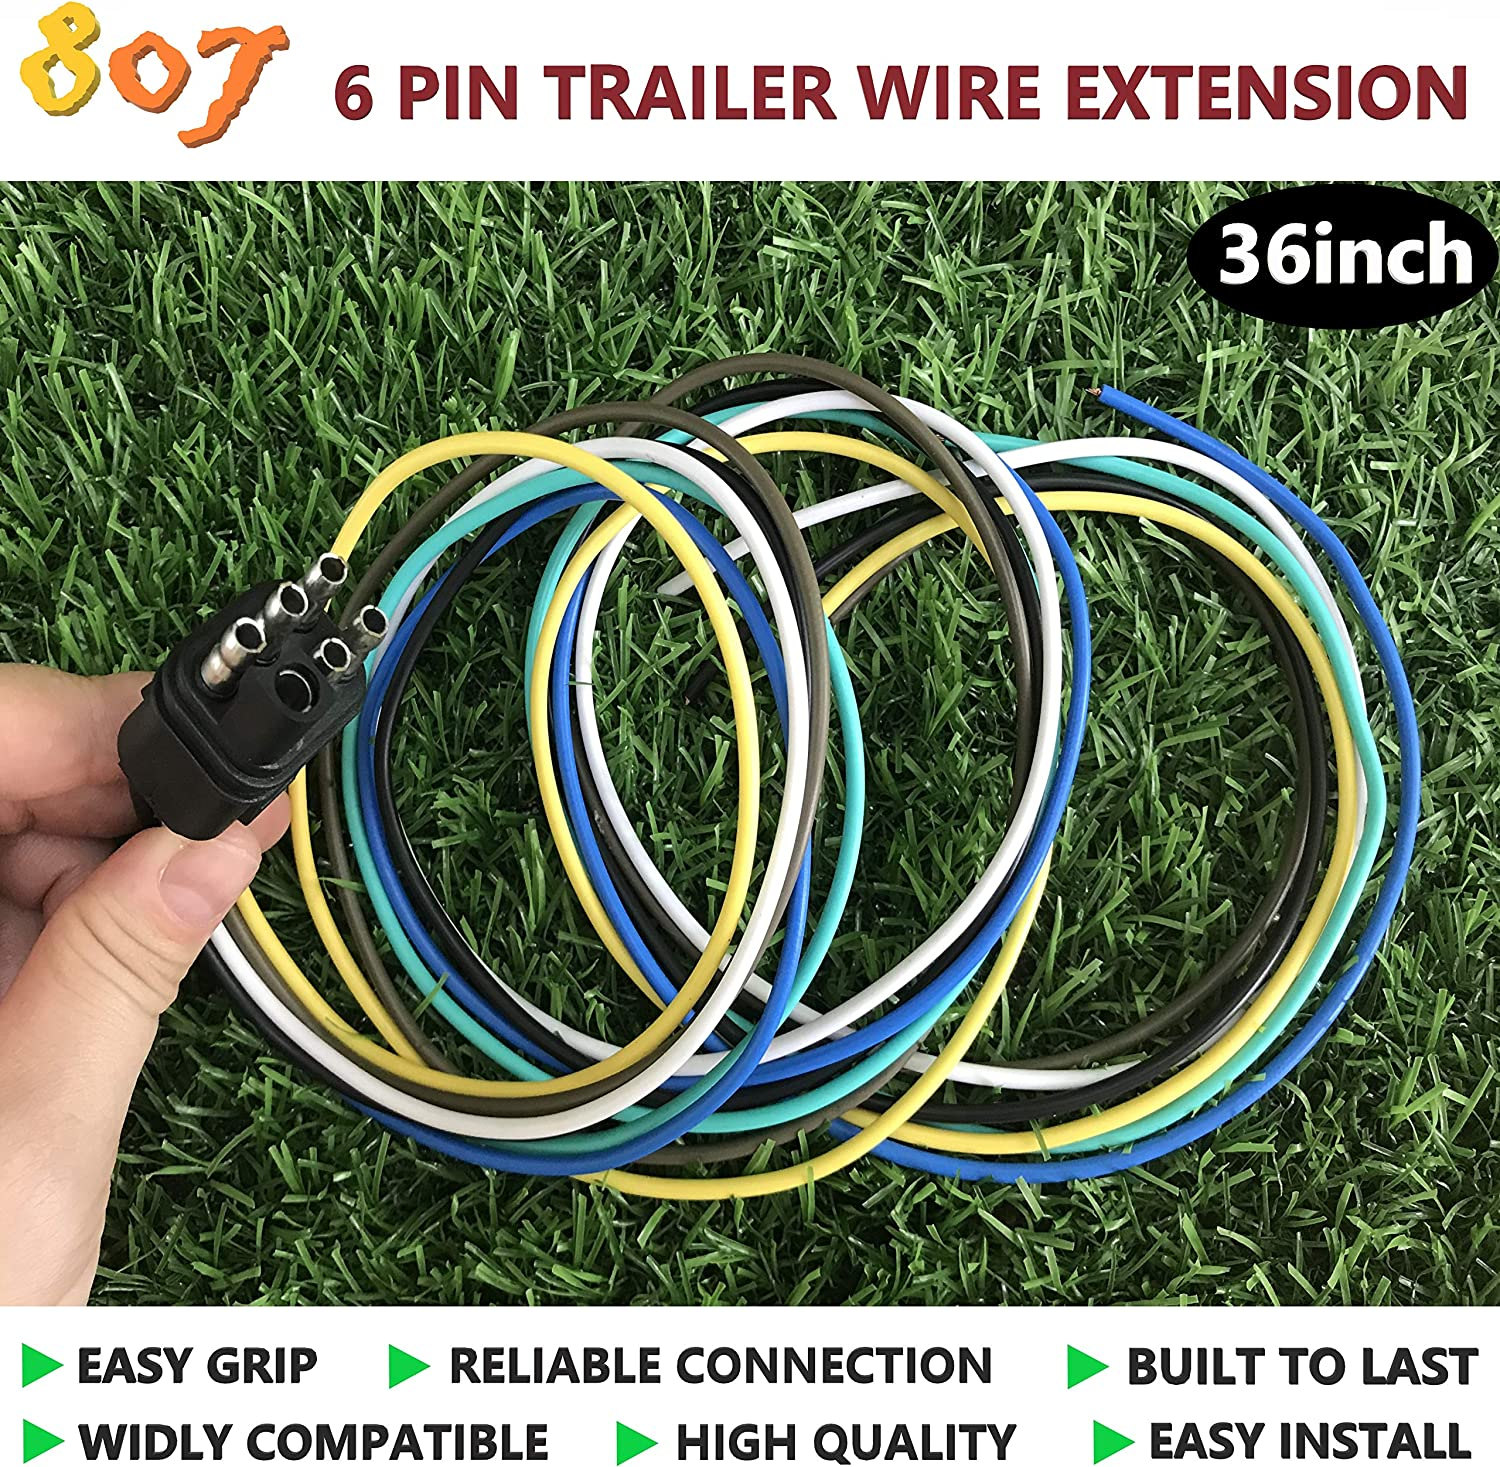 6 Way-Plug 807 Square 6-Way Trailer Wiring Harness Connectors,6 pin Square Trailer Wire Extension for LED Brake Tailgate Light Bars,Hitch Light Trailer Wiring Harness Extension Connector